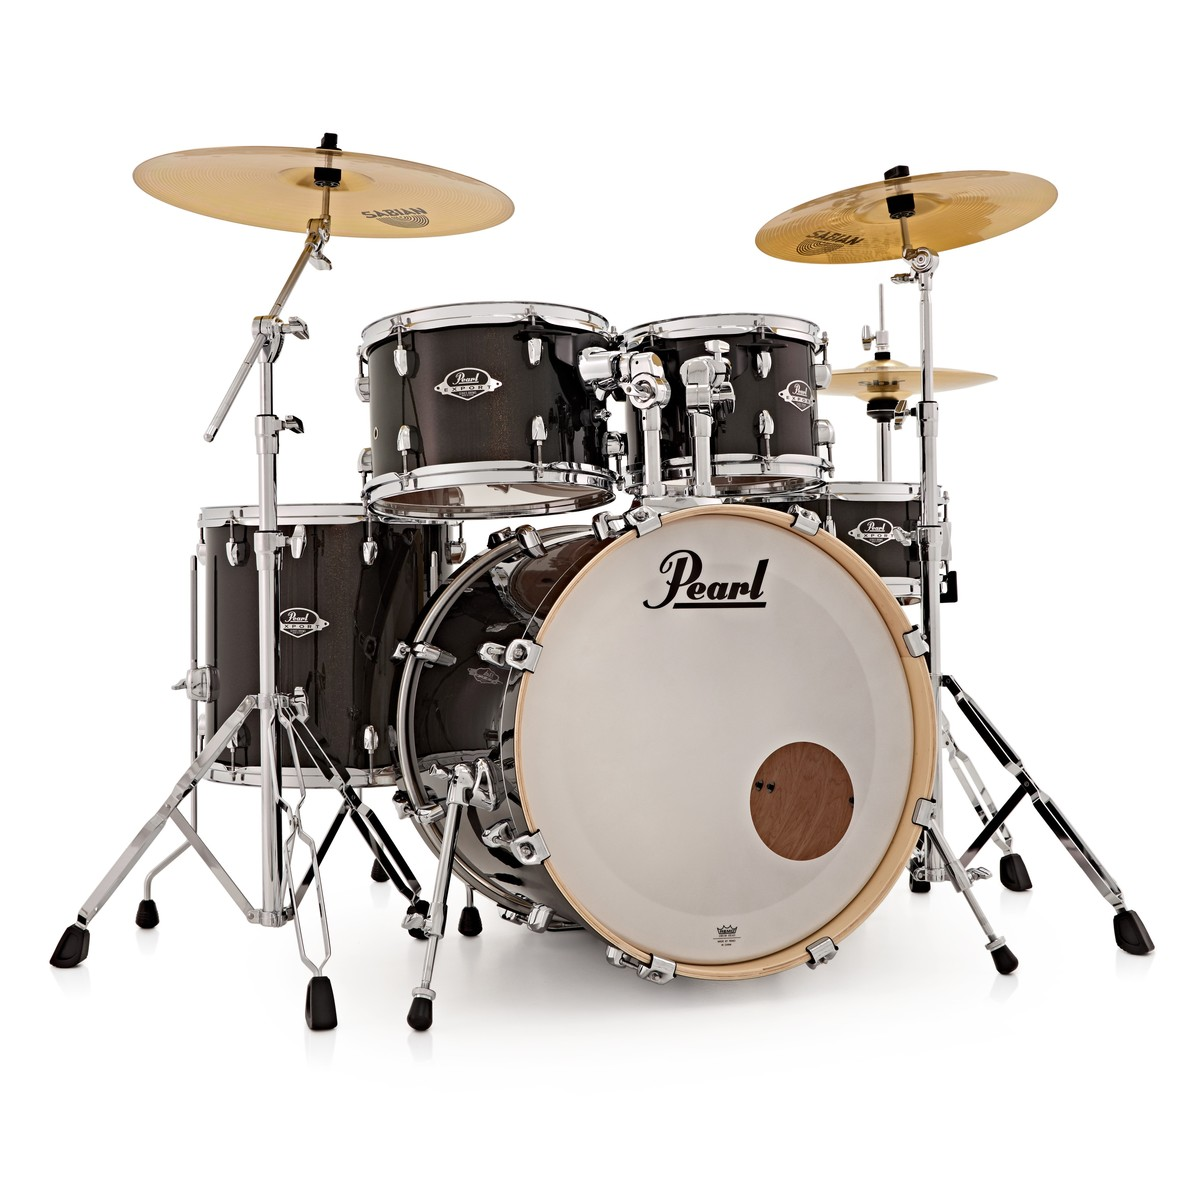 pearl export exx 20 39 39 fusion drum kit black gold sparkle box opened at gear4music. Black Bedroom Furniture Sets. Home Design Ideas